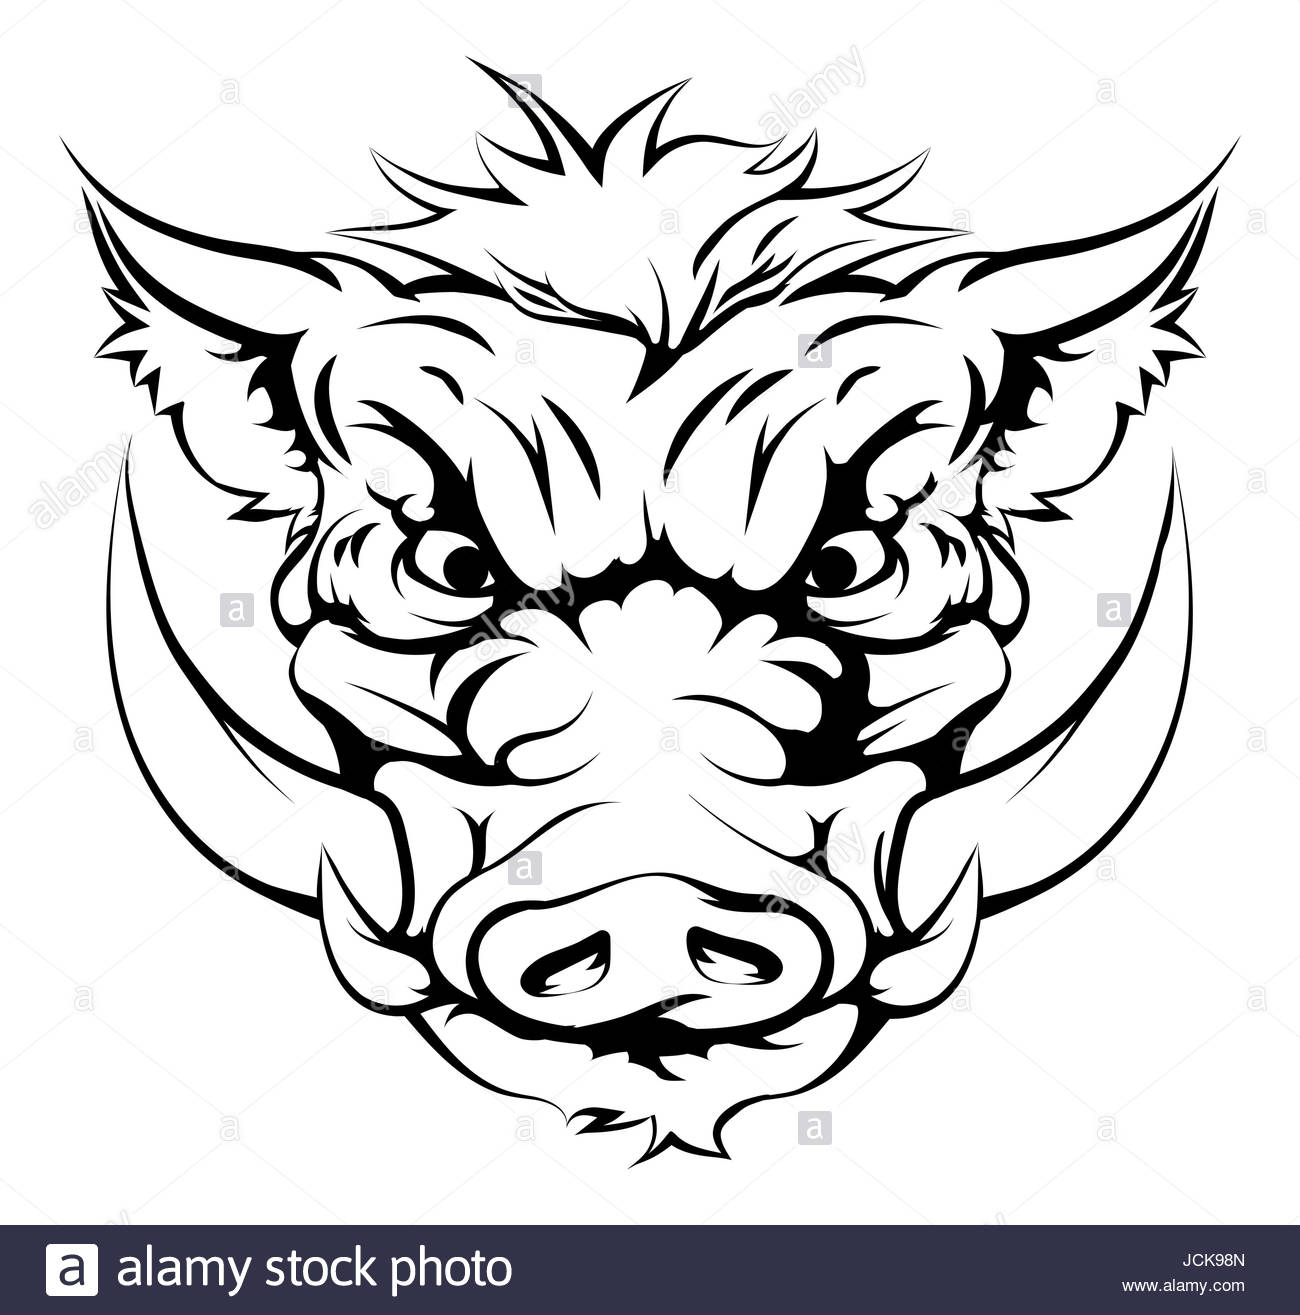 1300x1315 Drawing Of A Boar Animal Character Or Sports Mascot Stock Photo